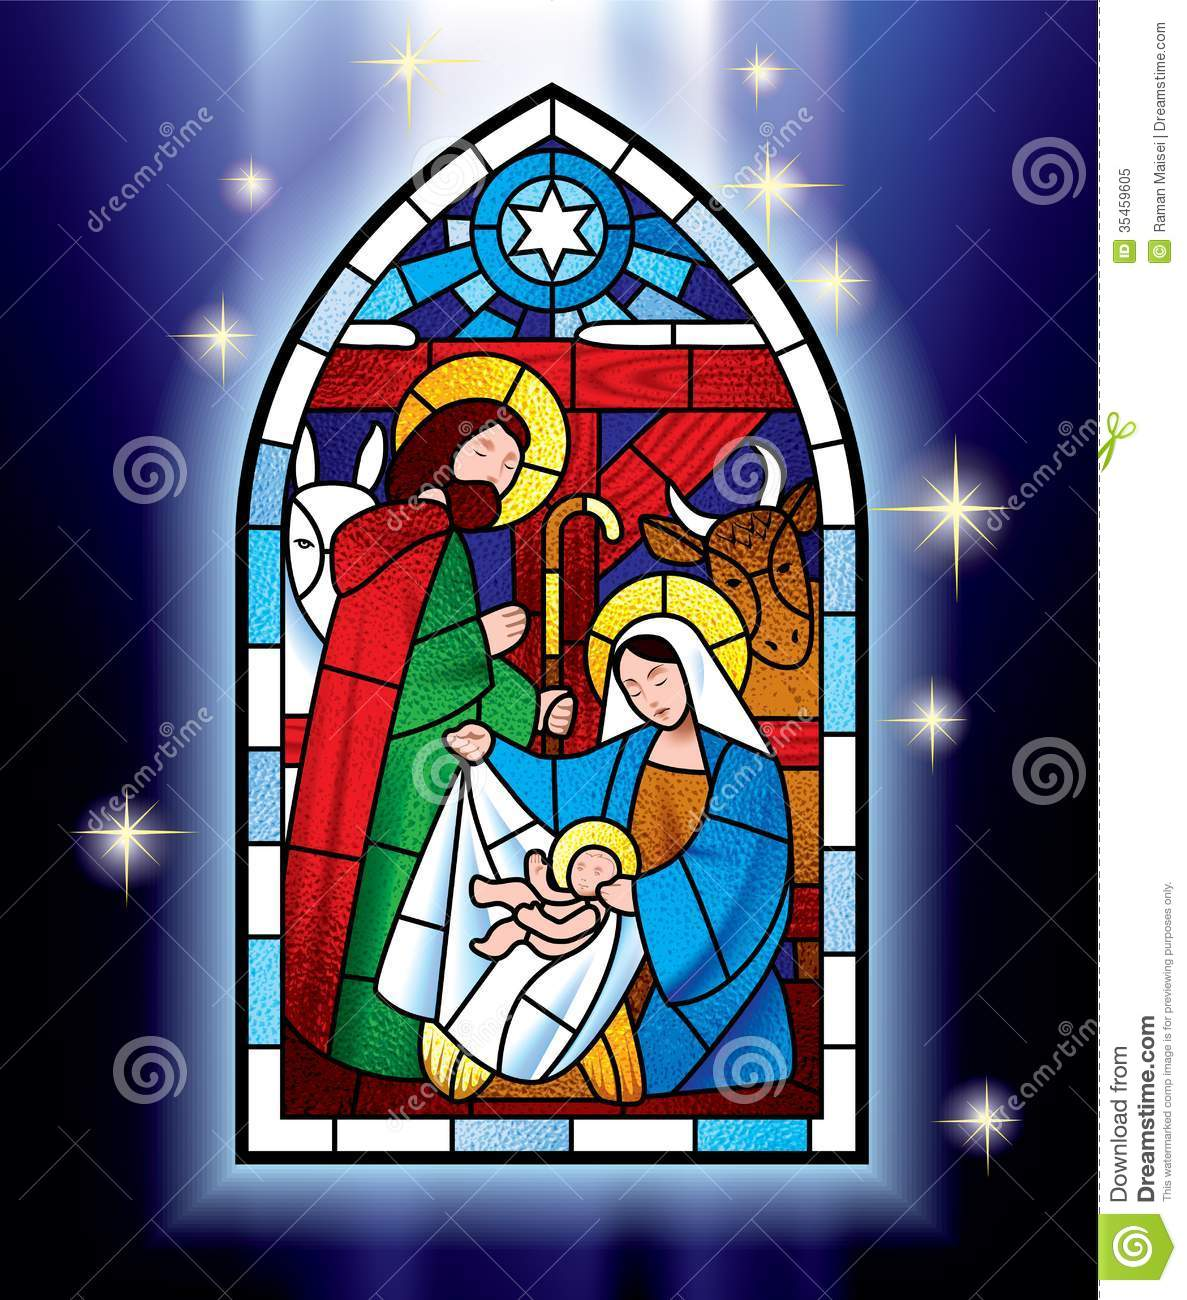 Stained Glass clipart manger scene Christmas  stained Windows window